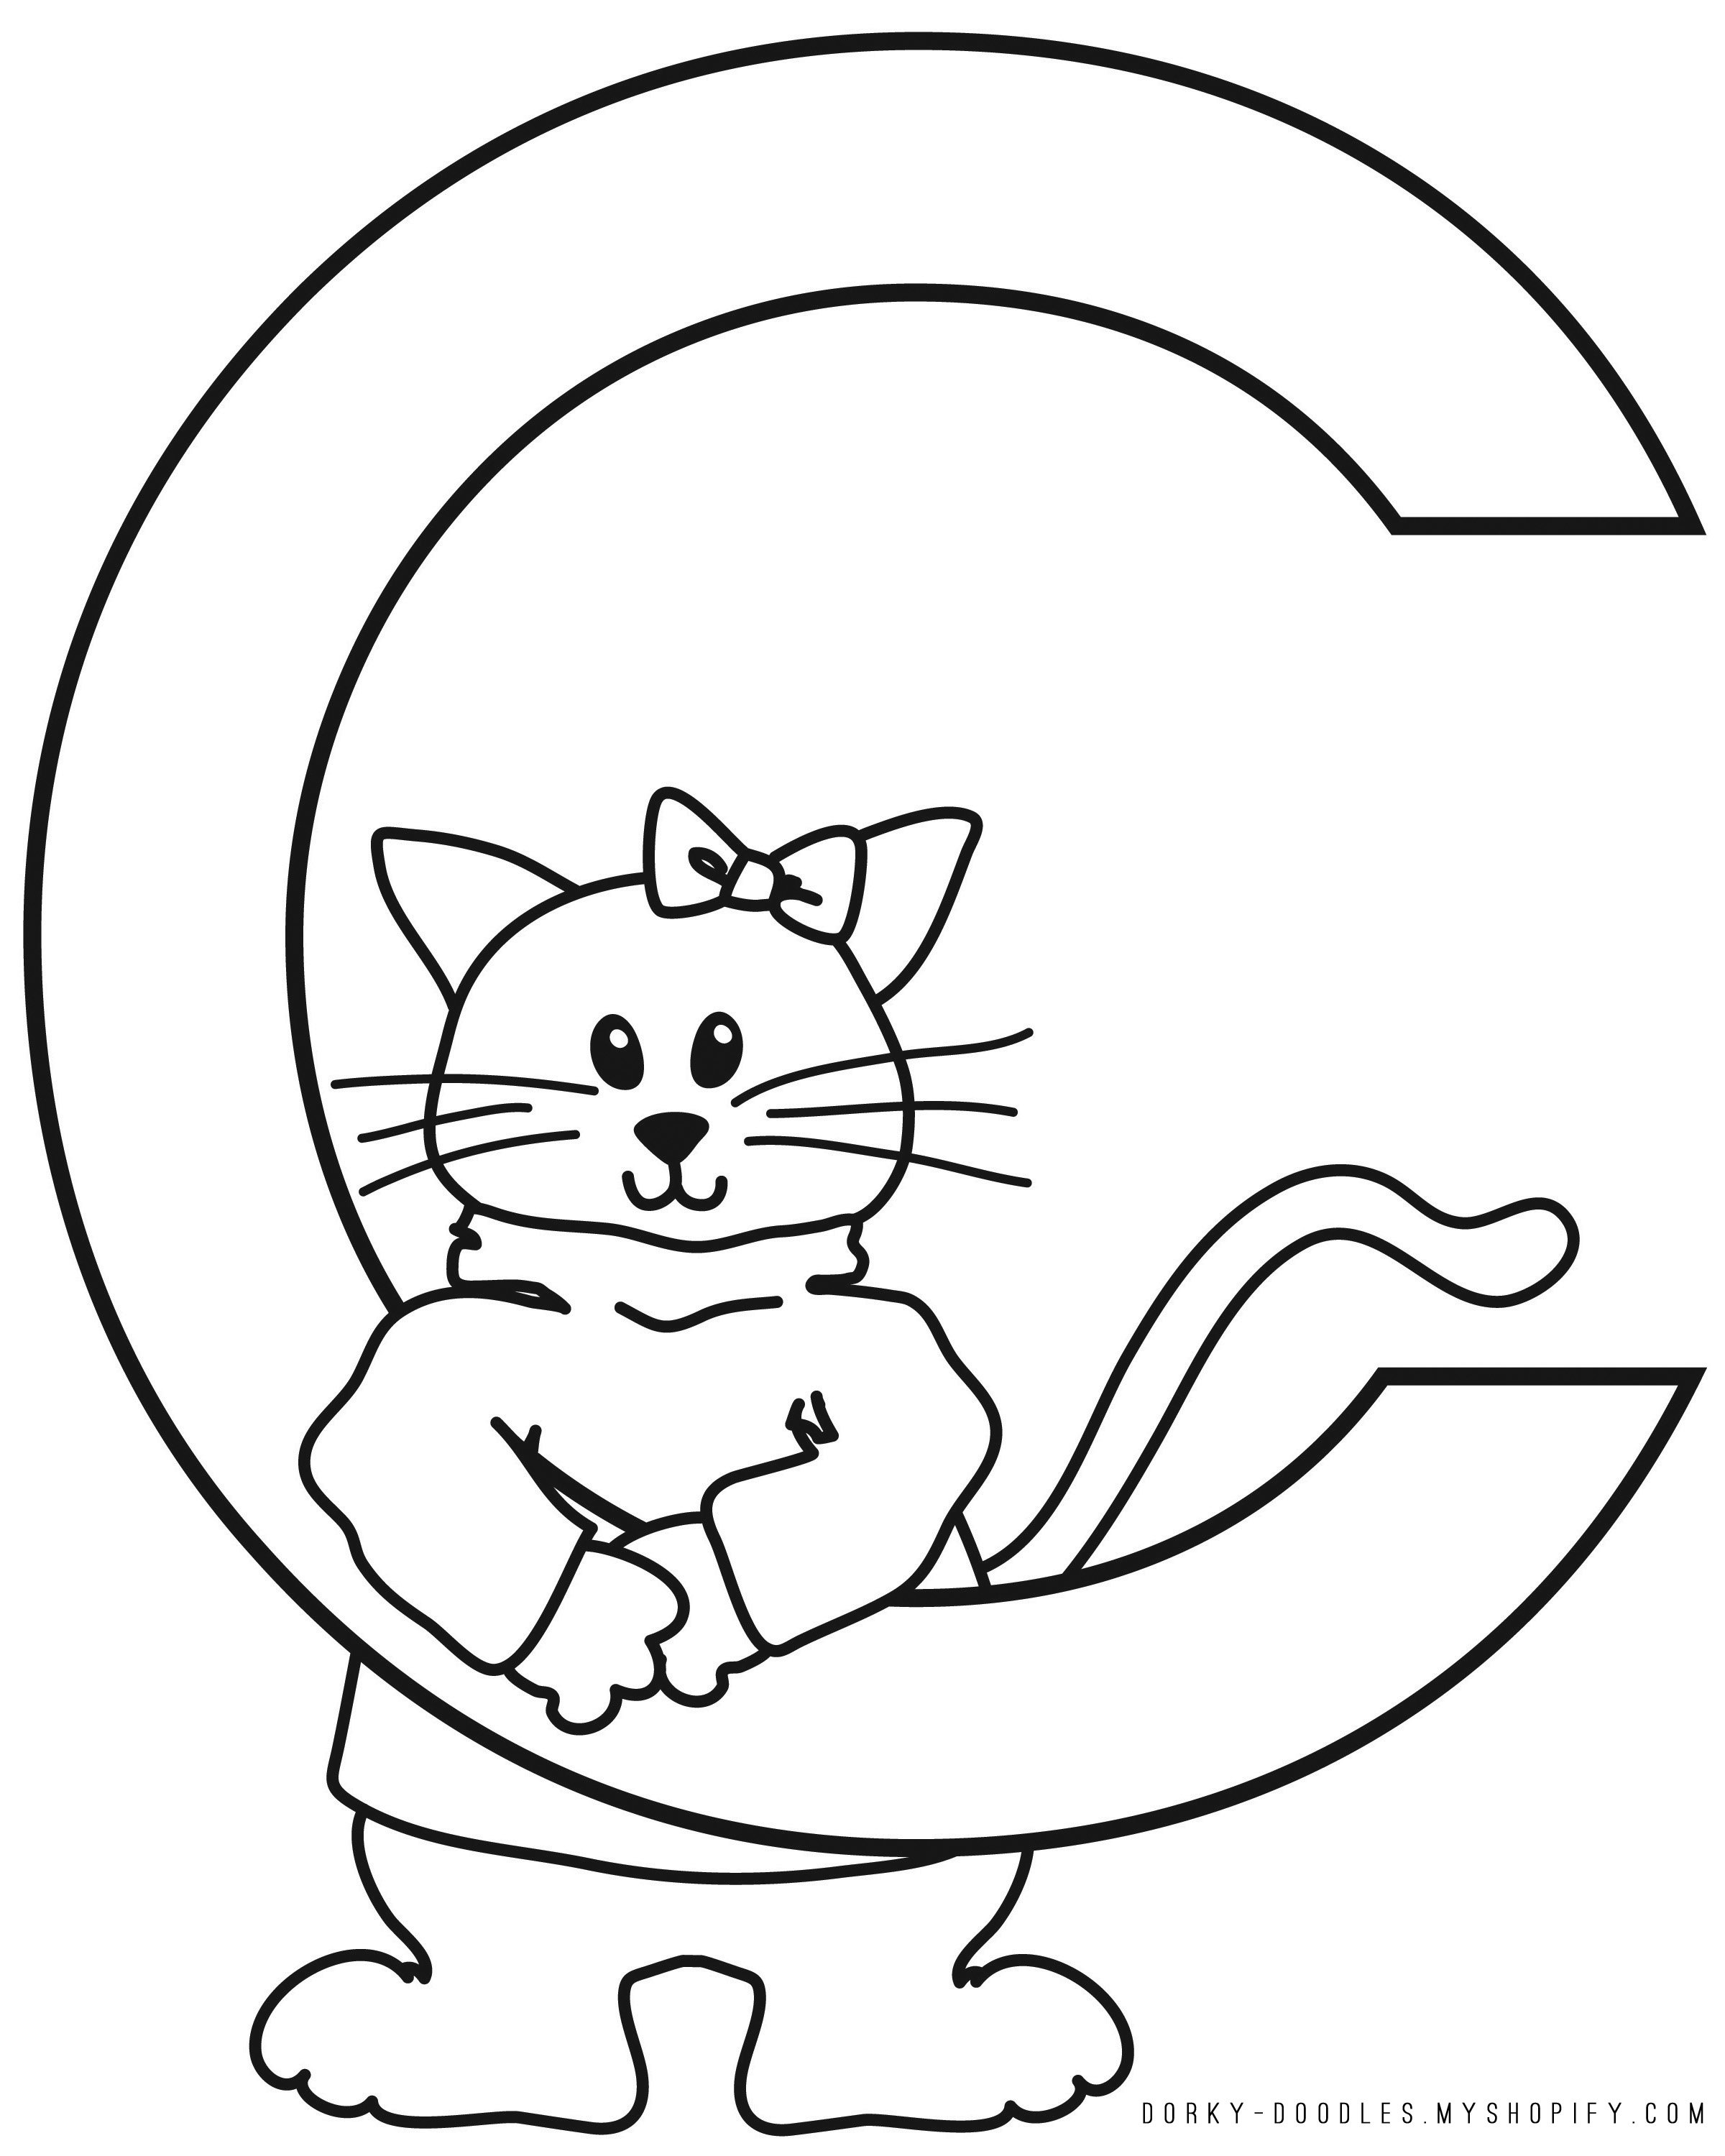 c for coloring page letter c coloring pages to download and print for free page for c coloring